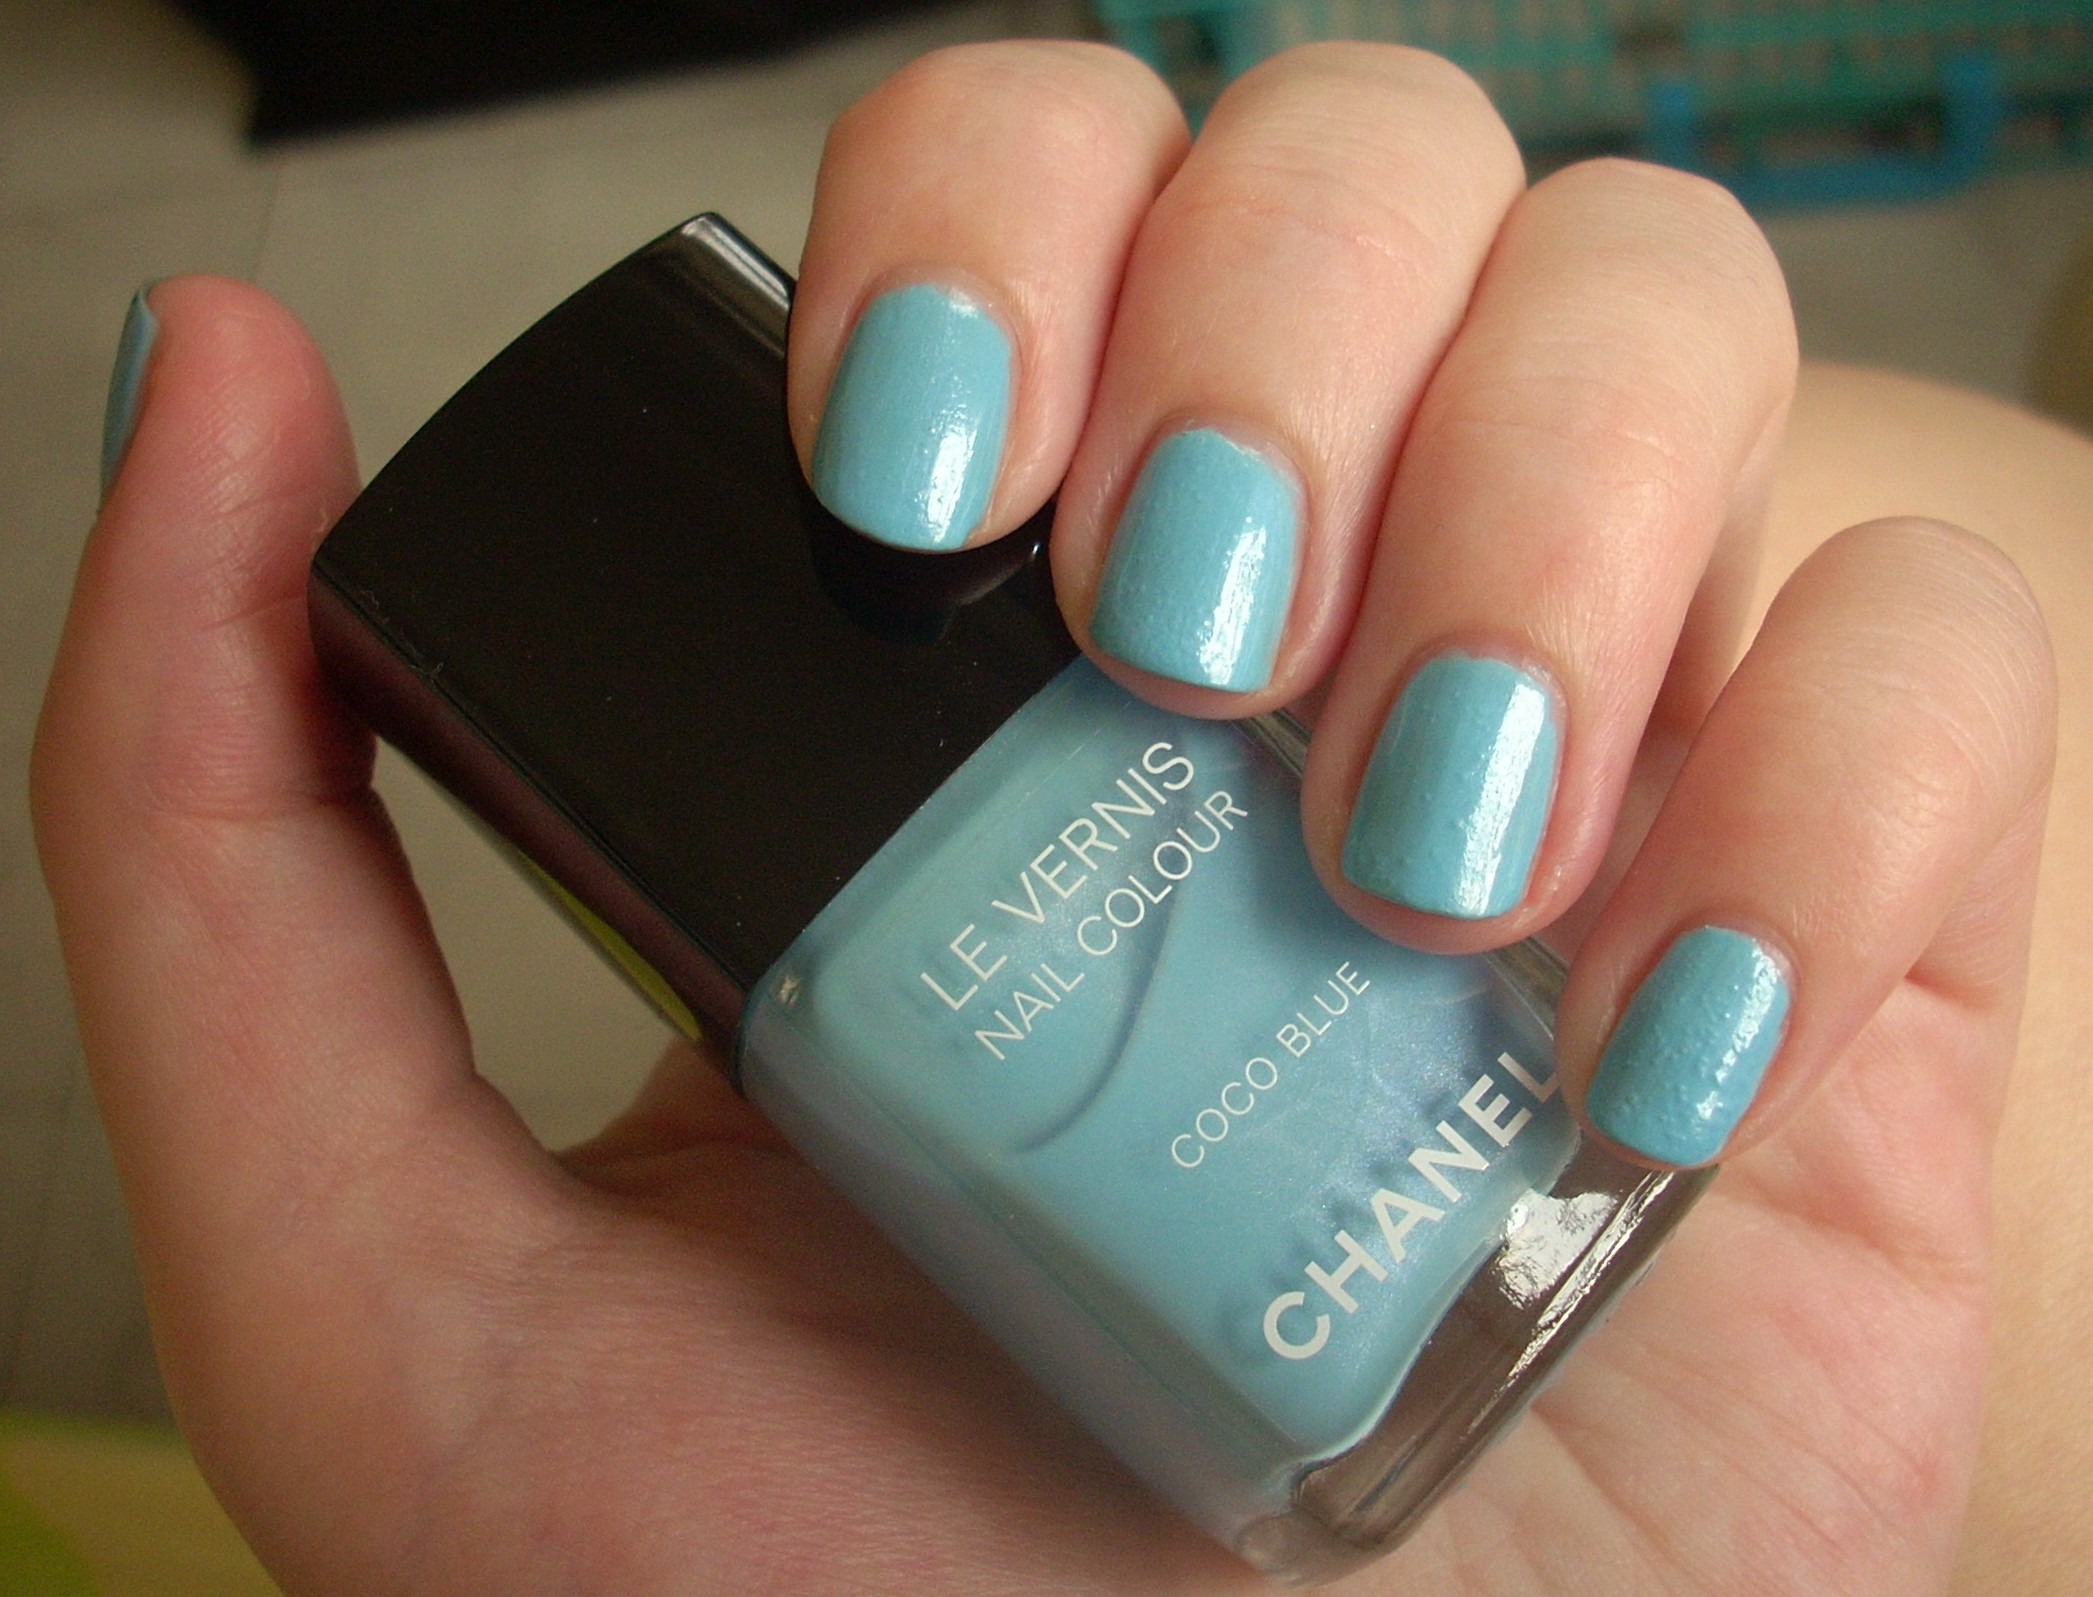 Coco blue nail salon hours nail ftempo for Nail salon hours